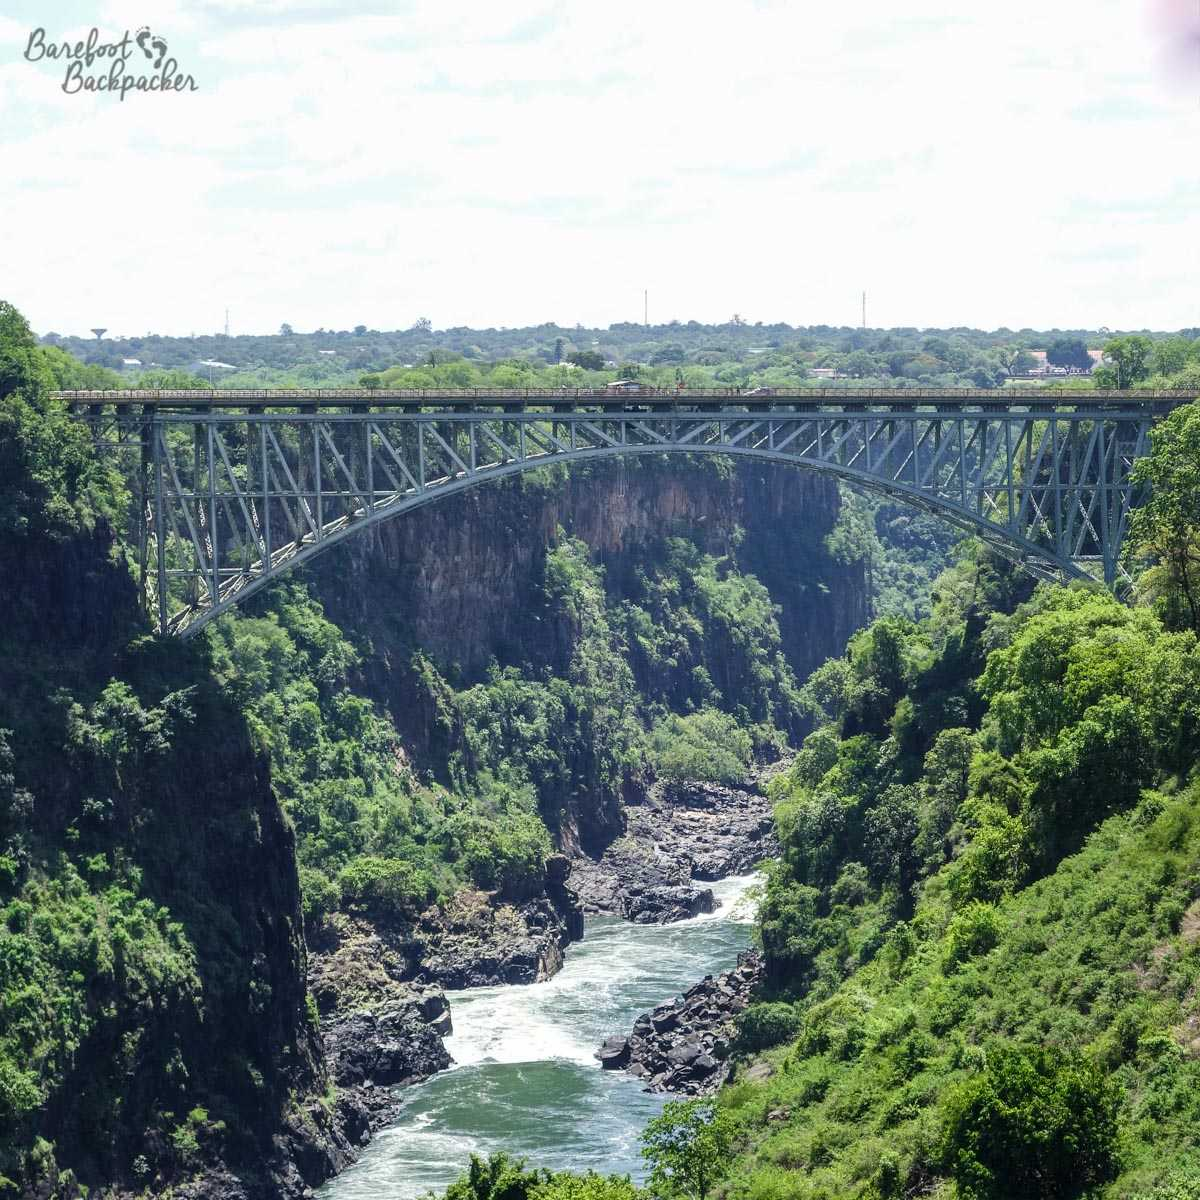 Victoria Falls Bridge – an arch of steel in the middle of a forest